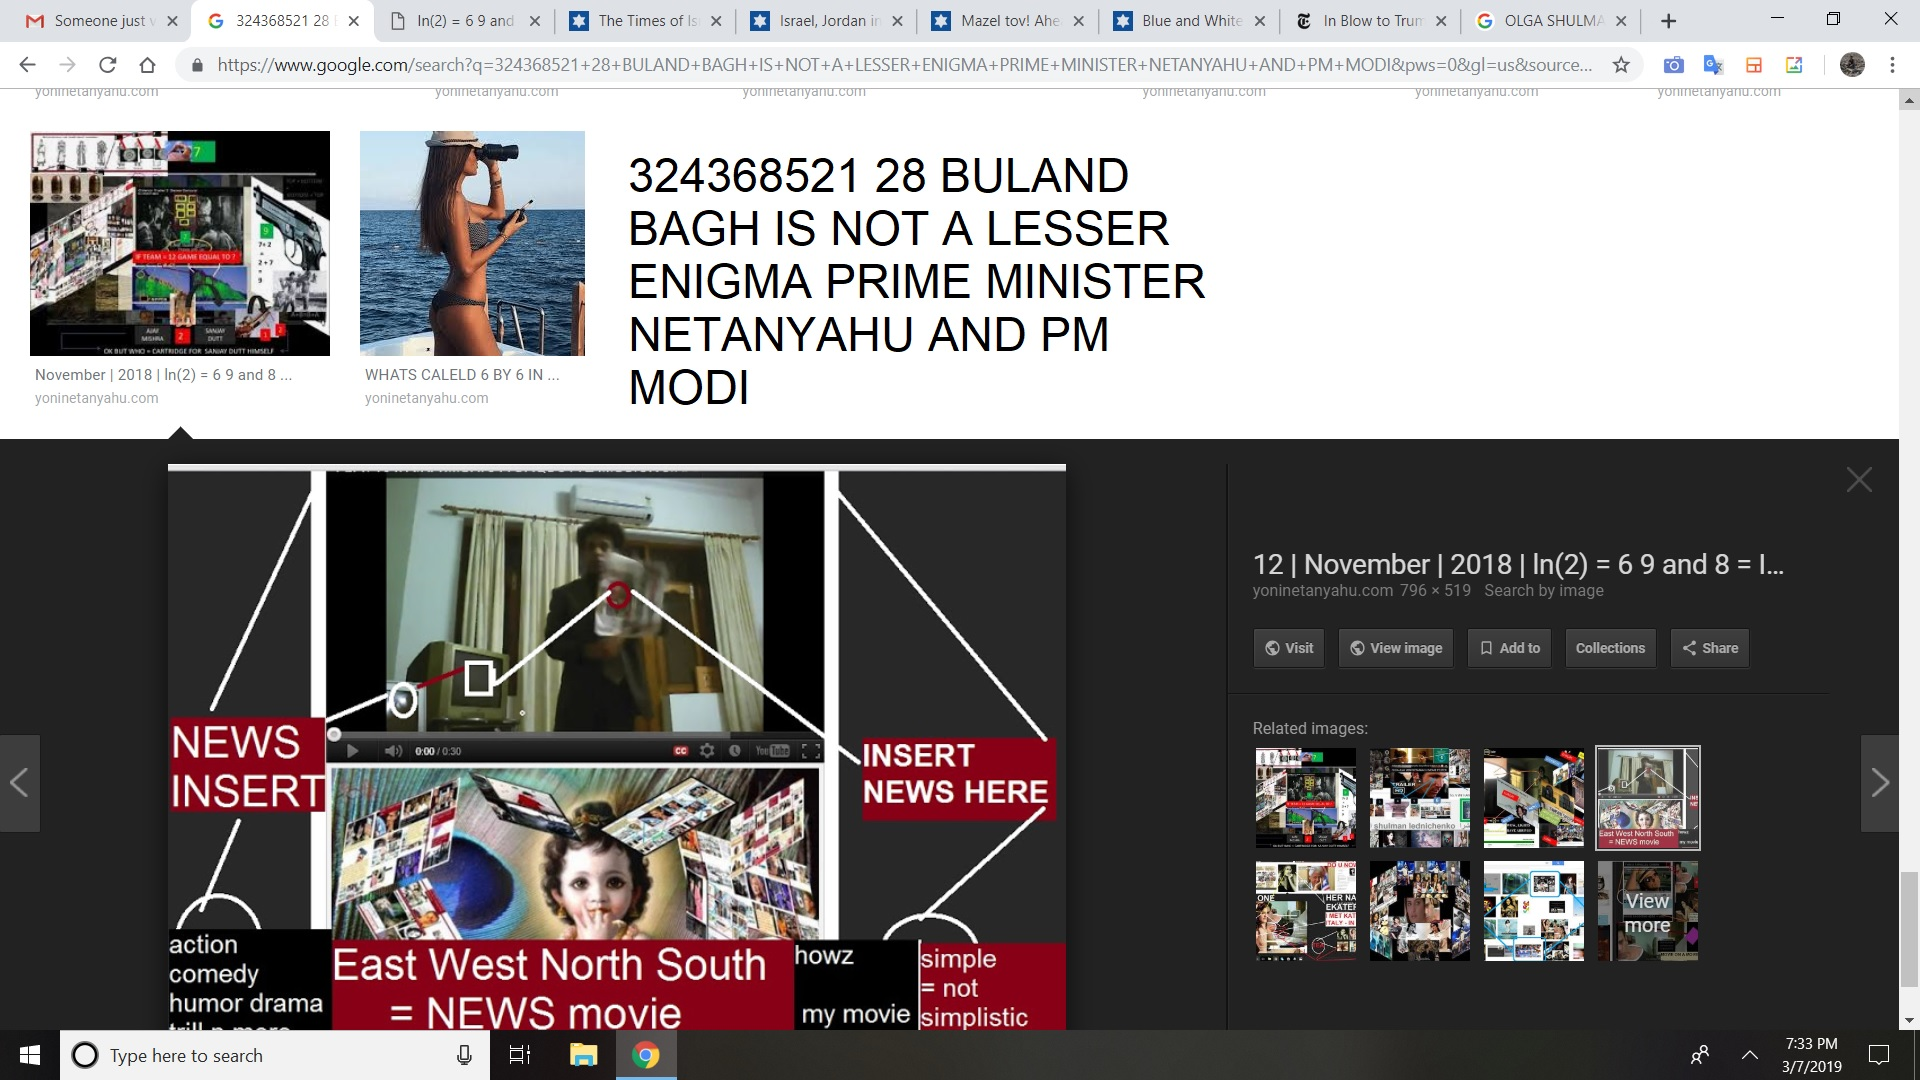 324368521 28 BULAND BAGH IS NOT A LESSER ENIGMA PRIME MINISTER NETANYAHU AND PM MODI